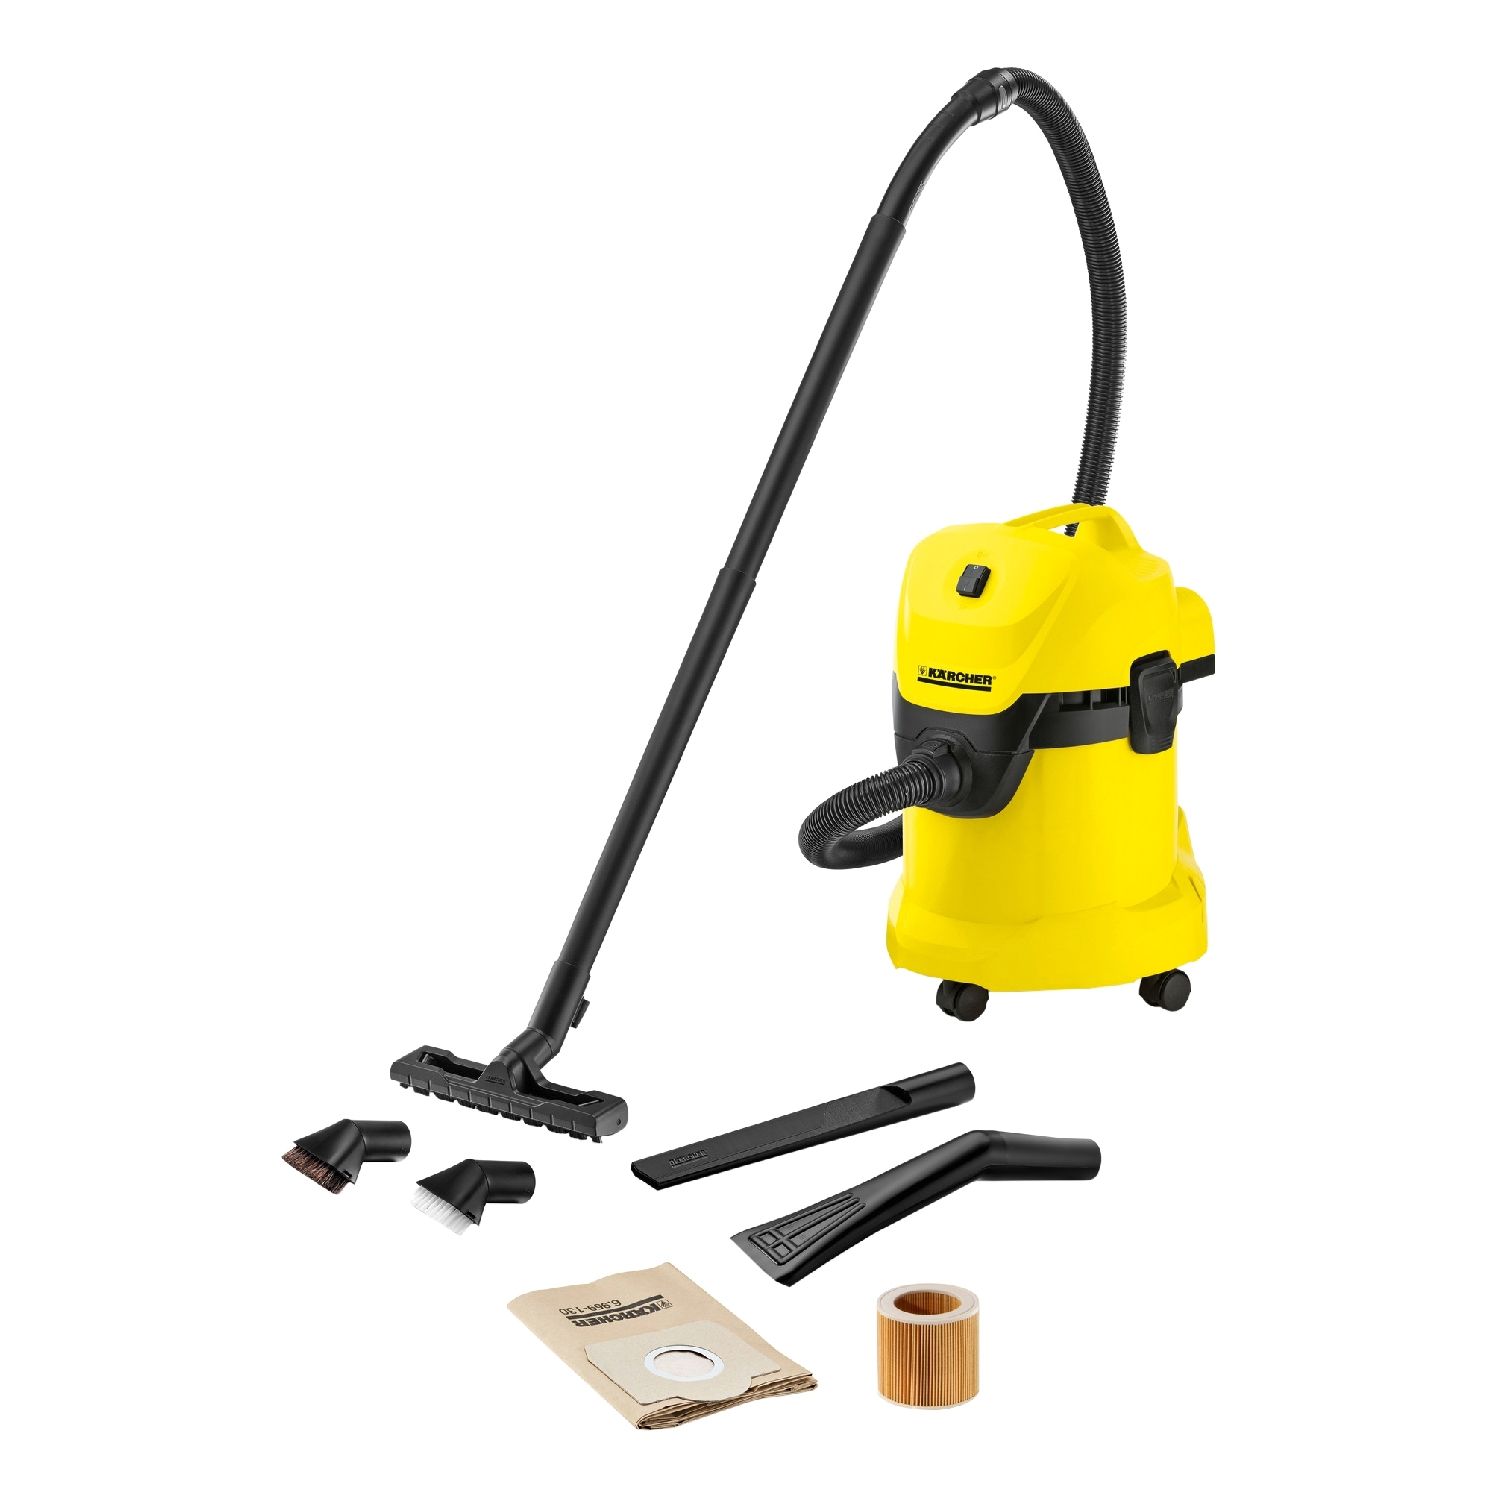 Vacuum cleaner wet and dry vacuum cleaner KARCHER WD 3 Car Vac (Power 1000 W, tank 17 L, set of nozzles) vacuum cleaner wet and dry karcher ad 4 premium eu ii